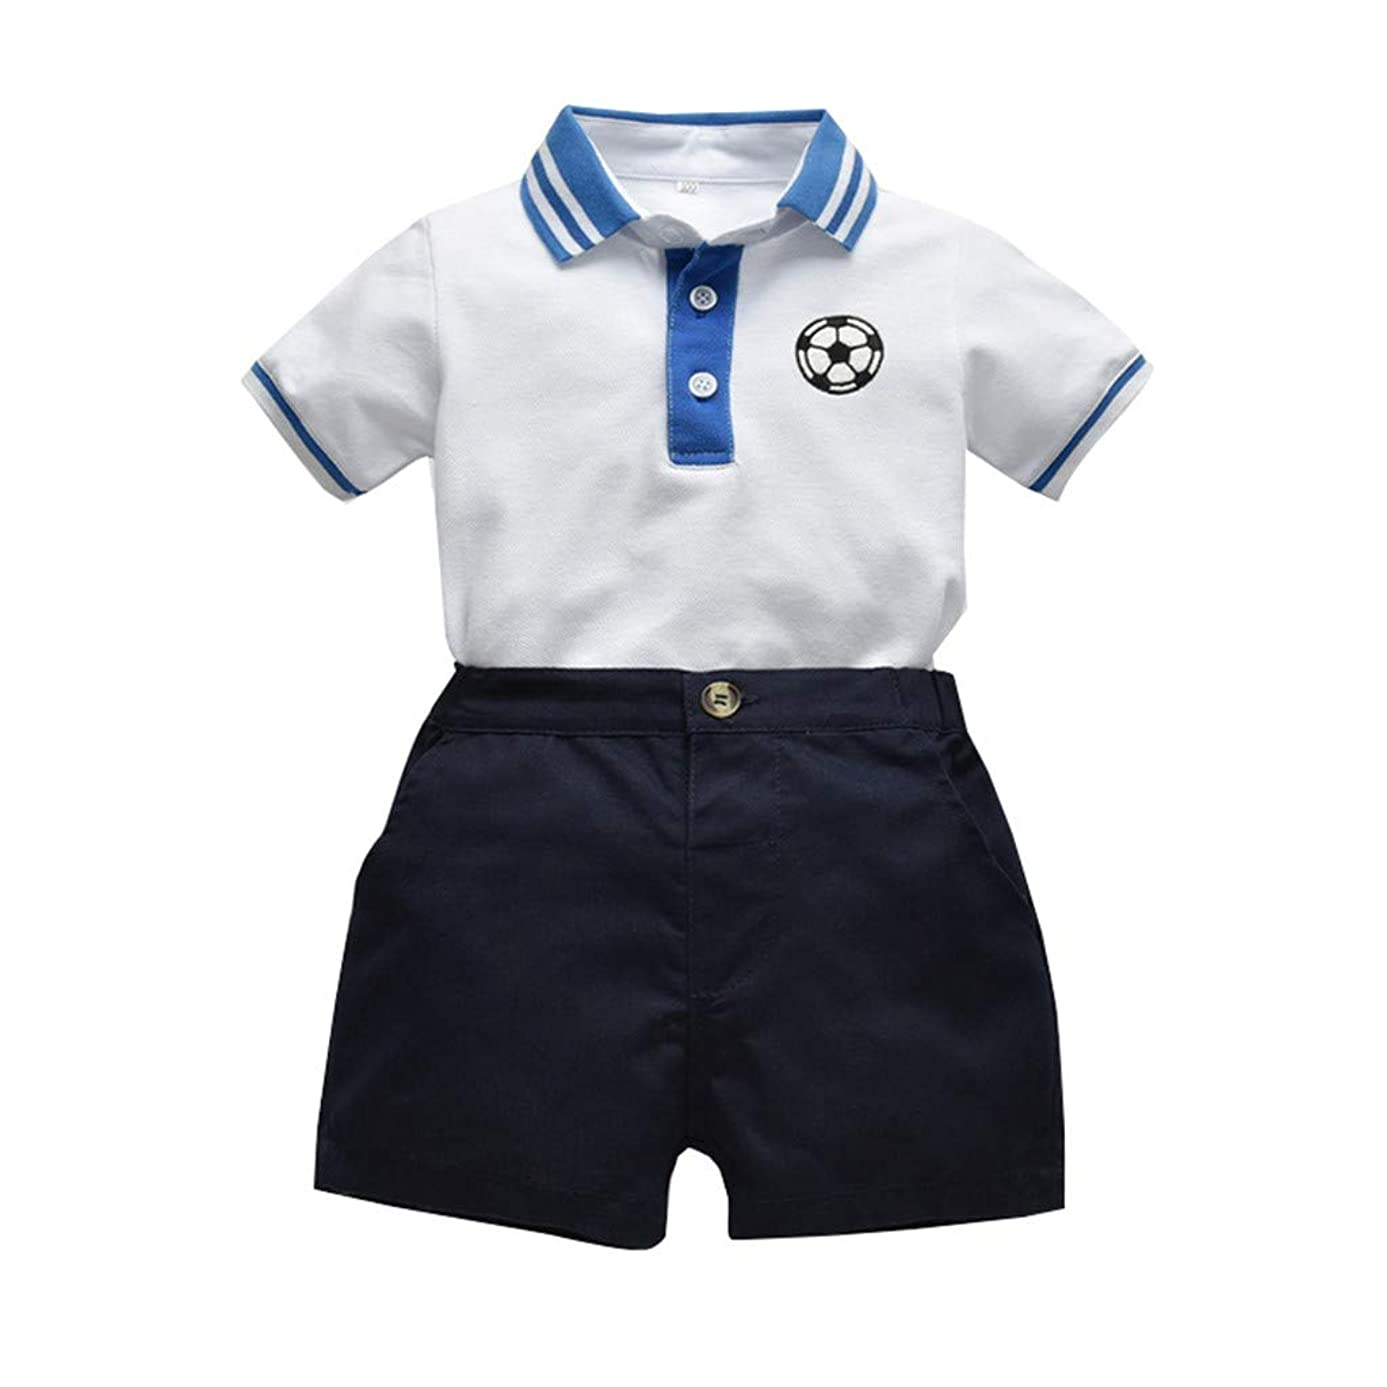 Toddler Baby Boys Clothes Cotton Gentleman Striped Football Polo Shirt Tops+Solid Shorts Bodysuit Outfits